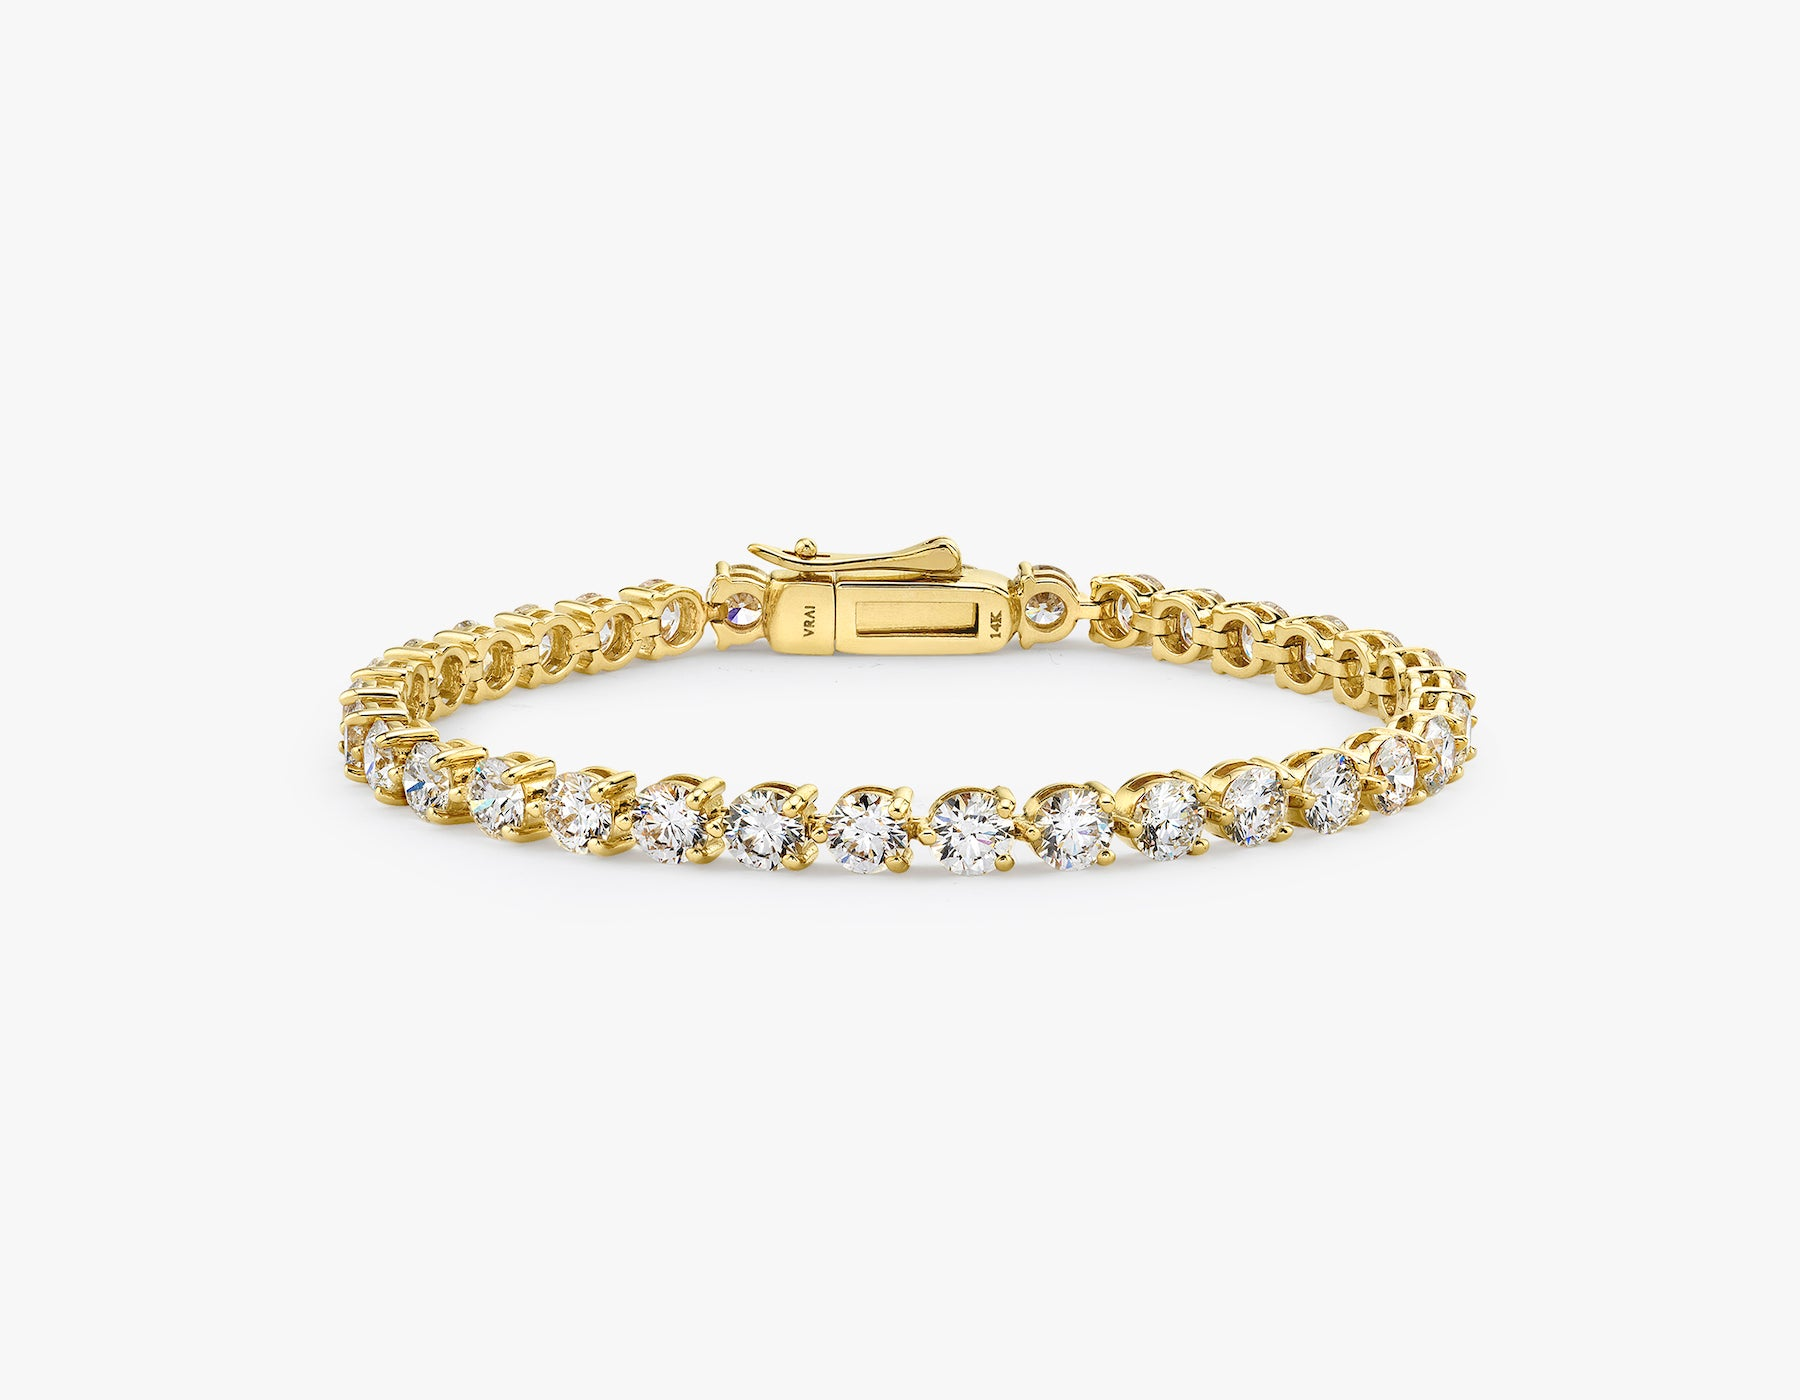 Vrai simple elegant Round Brilliant Diamond Tennis Bracelet with .25ct stone, 14K Yellow Gold